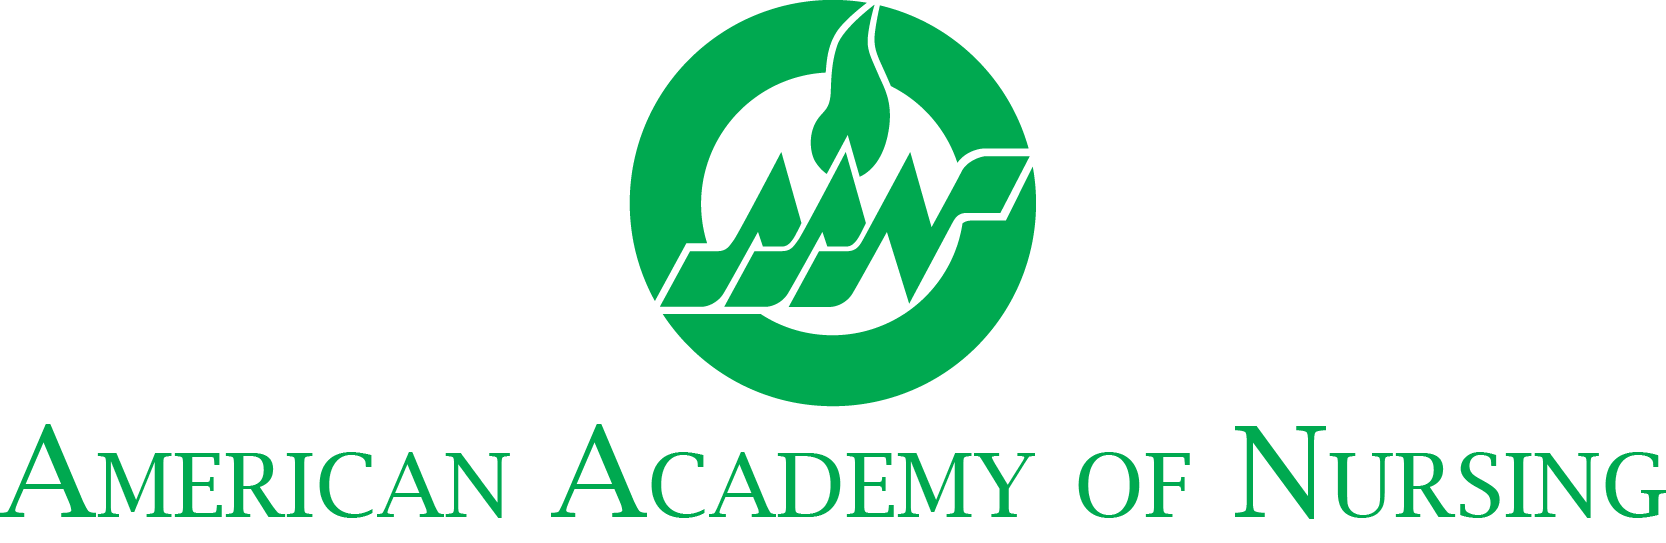 Academy Signature Top No Tagline.png